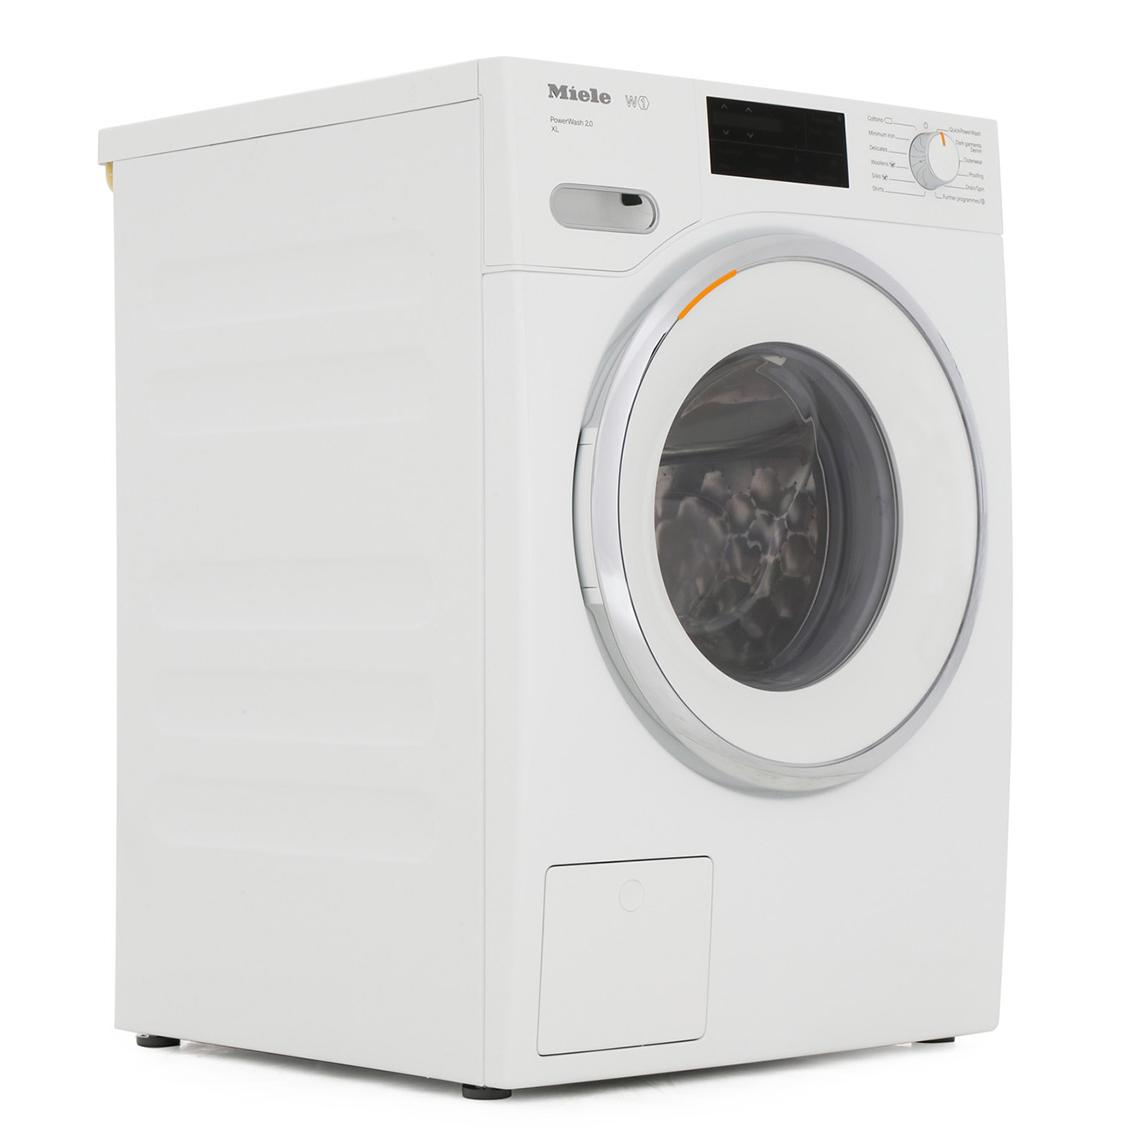 Buy Miele W1 - WhiteEdition WWI320 PowerWash XL White ...